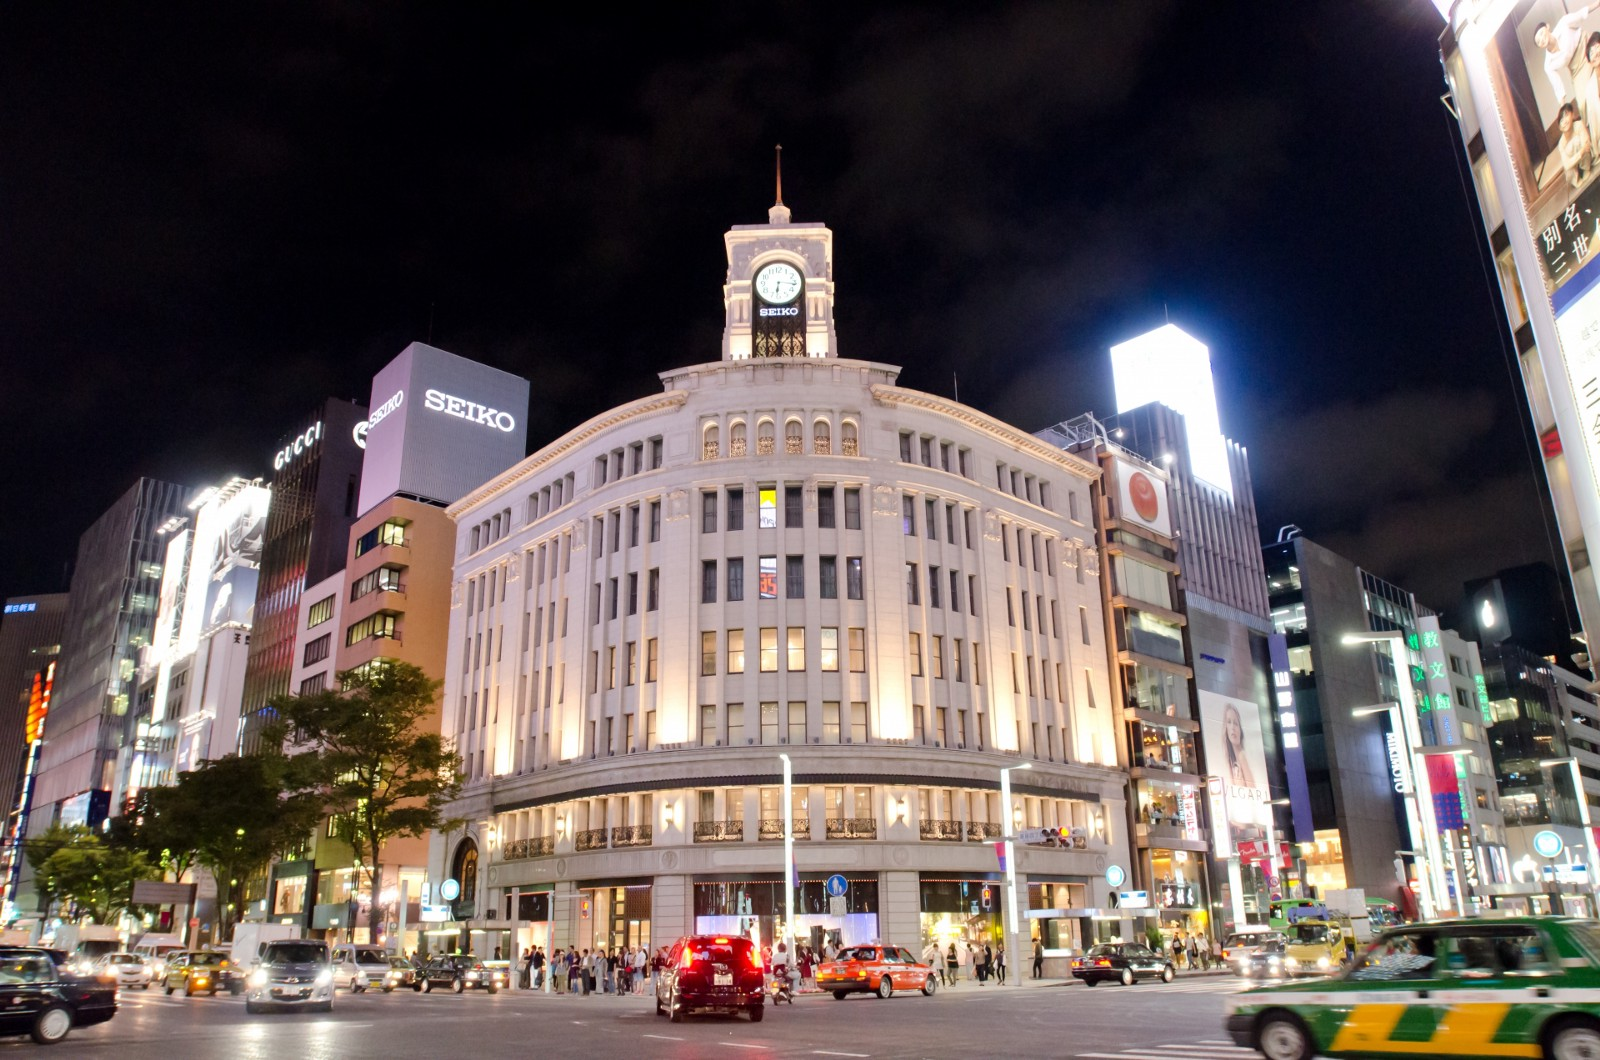 0cd56575a29 ... a popular shopping destination for both Japanese and foreign visitors.  The area is mostly known for where several long established department  stores are ...